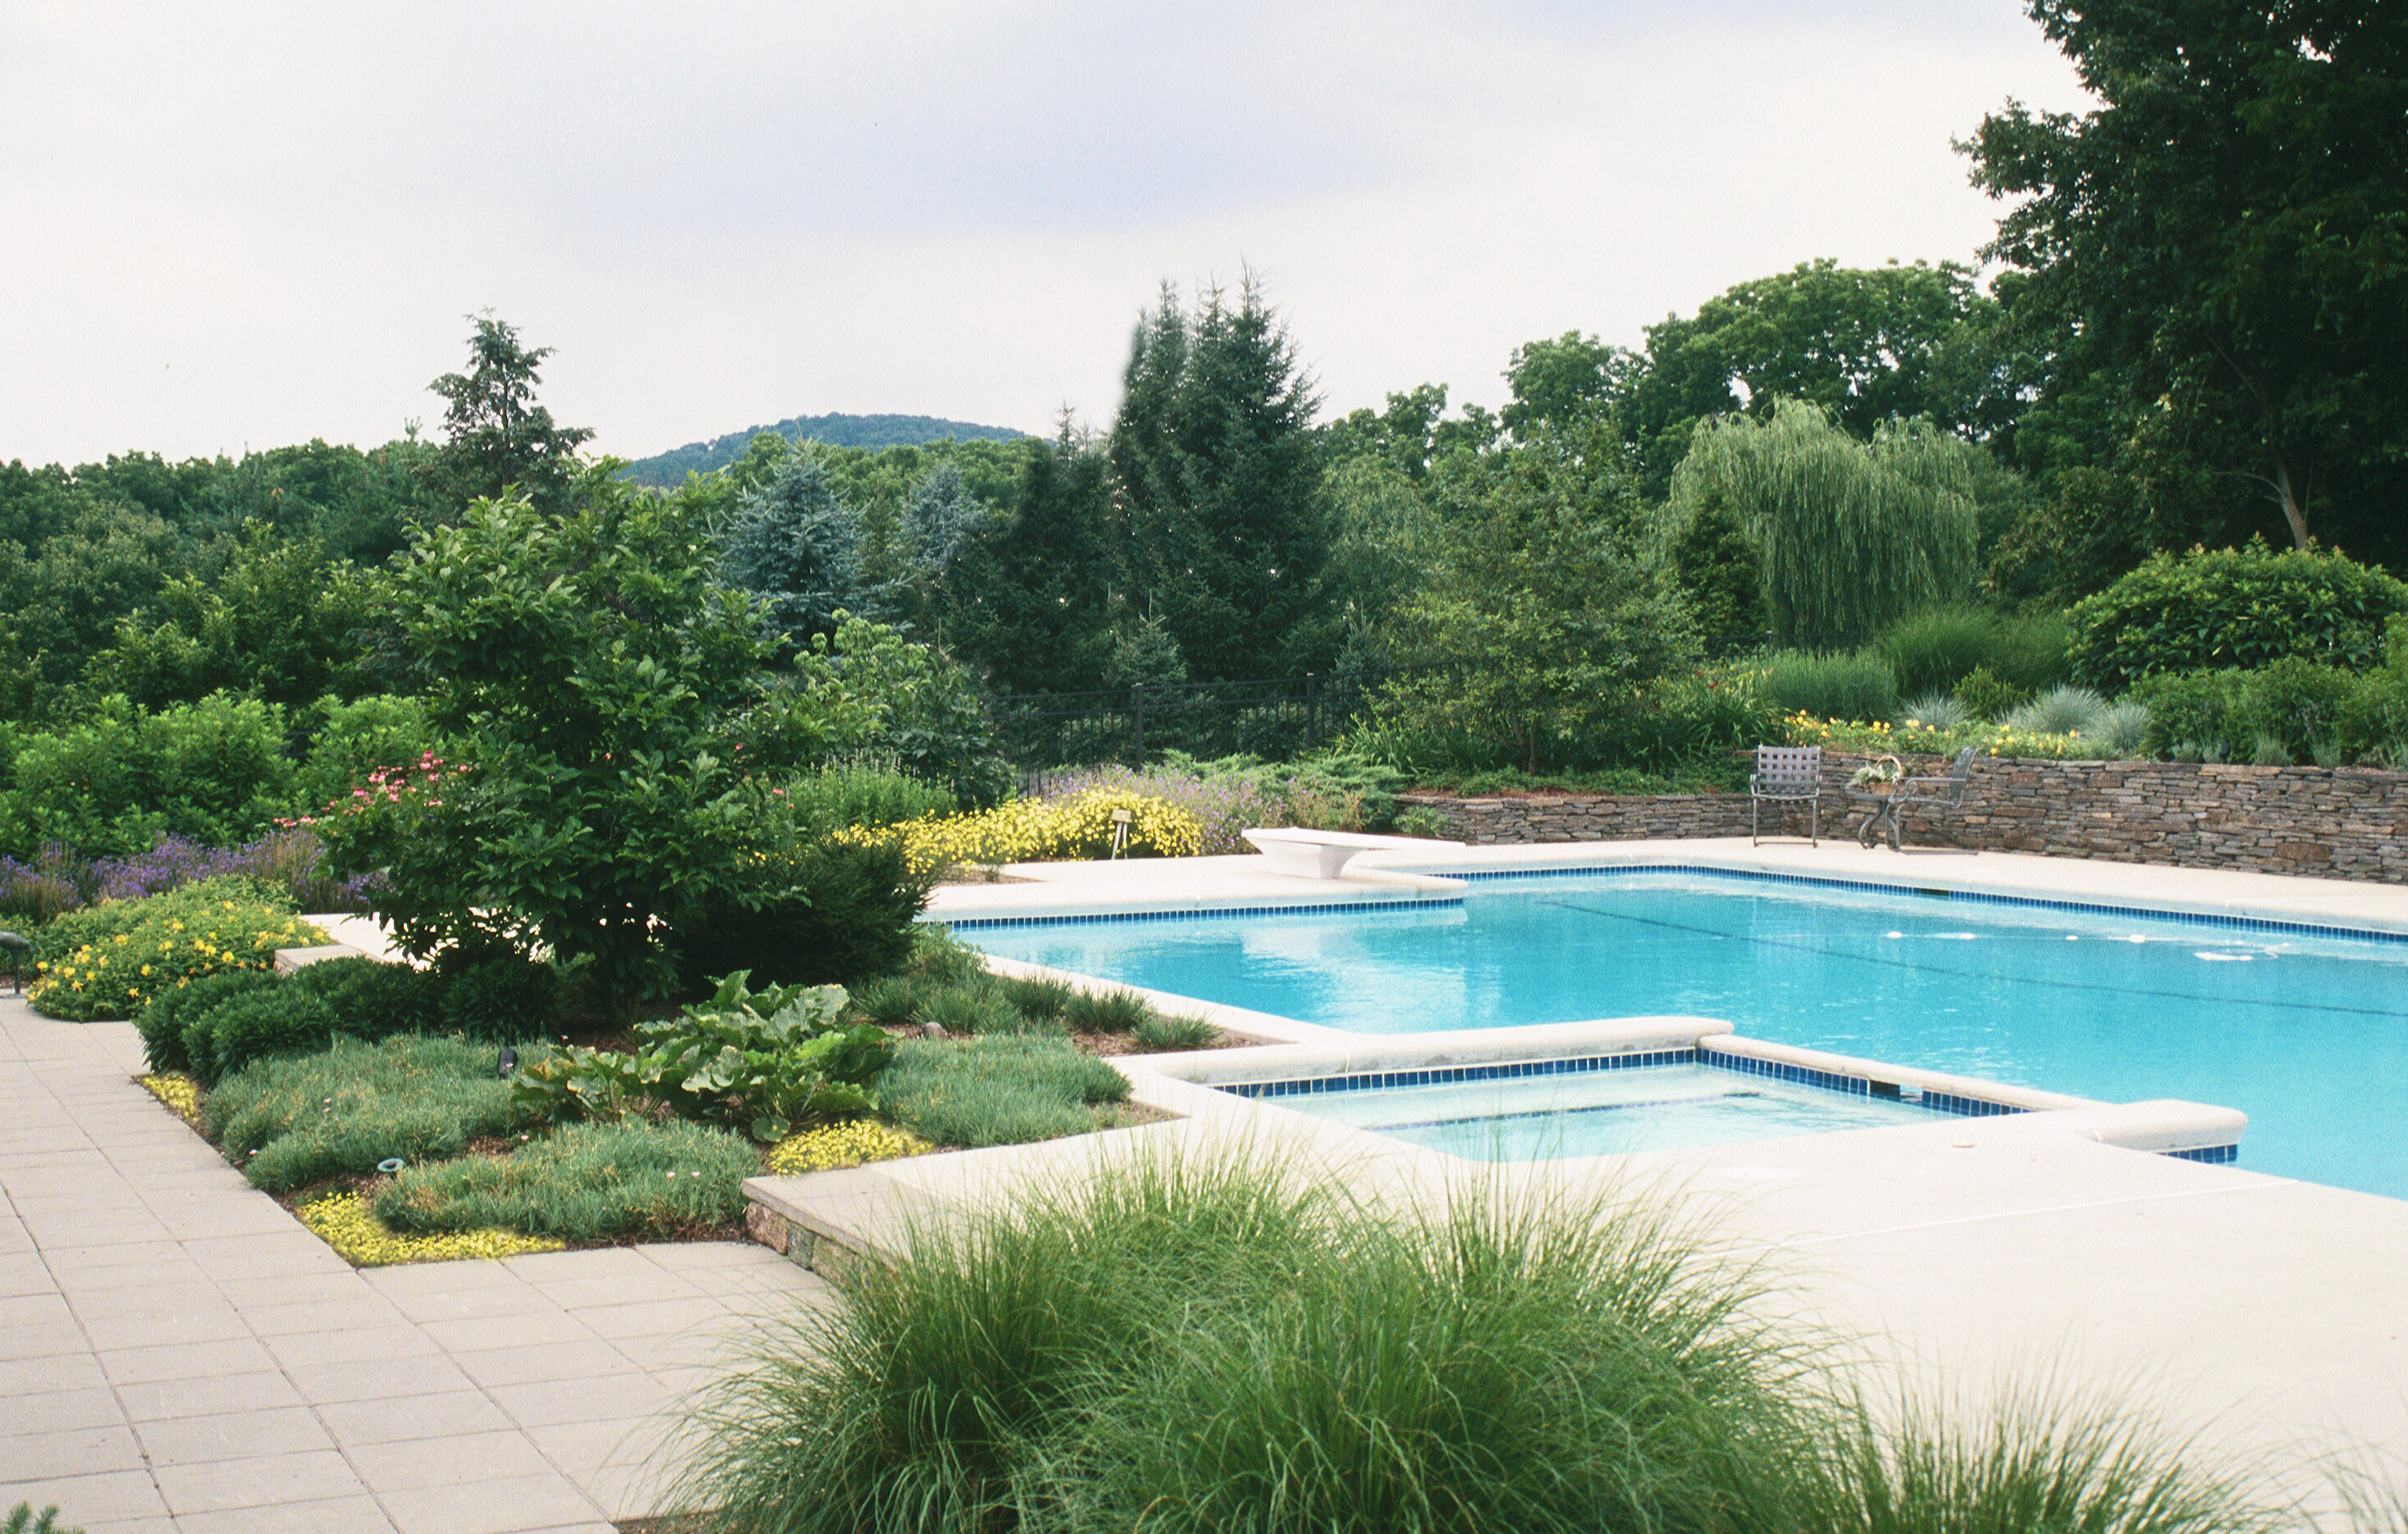 Swimming Pool Company – Design & Construction Advice - Garden Design Inc.